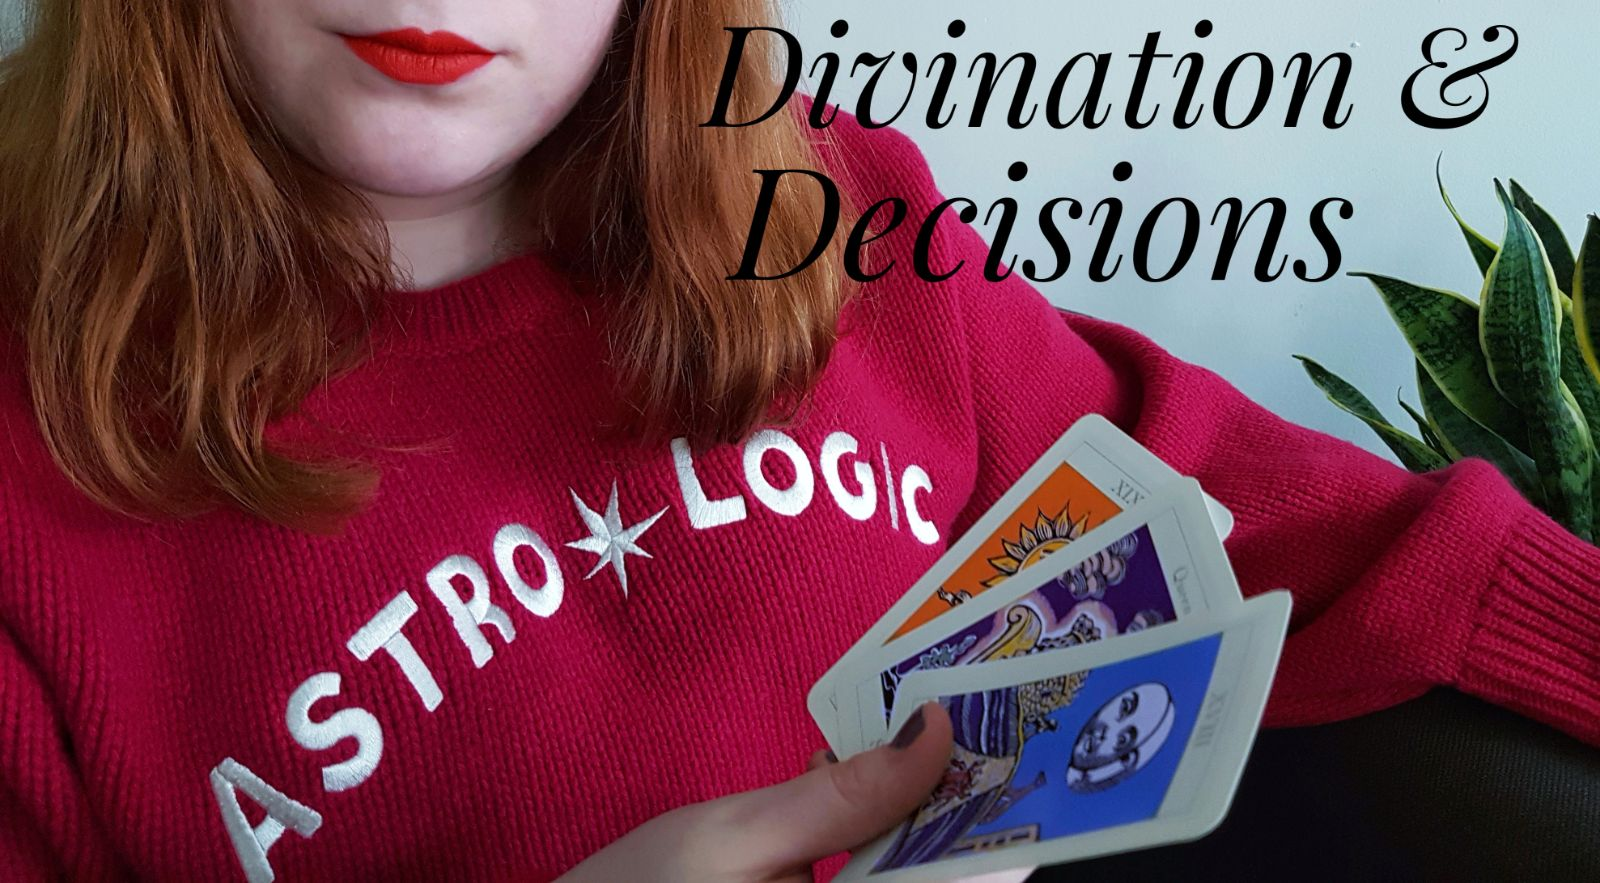 Using tarot cards to make decisions